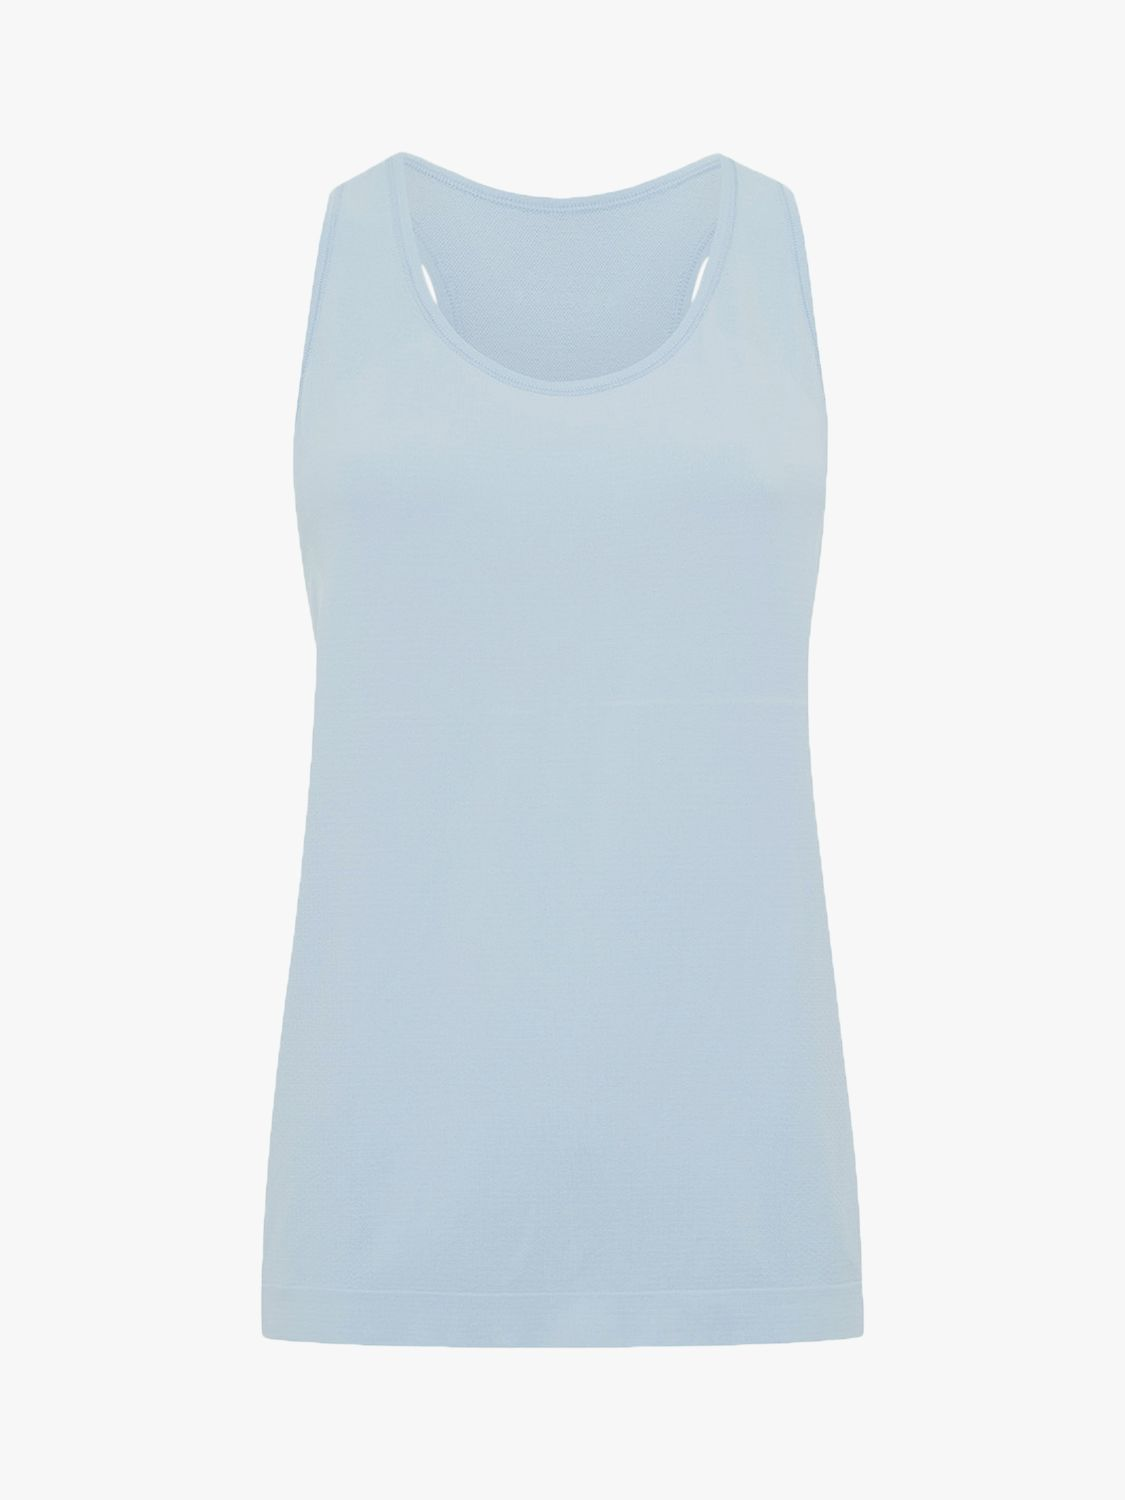 Jilla Sweat & Engage Recycled Training Vest, Sky Blue